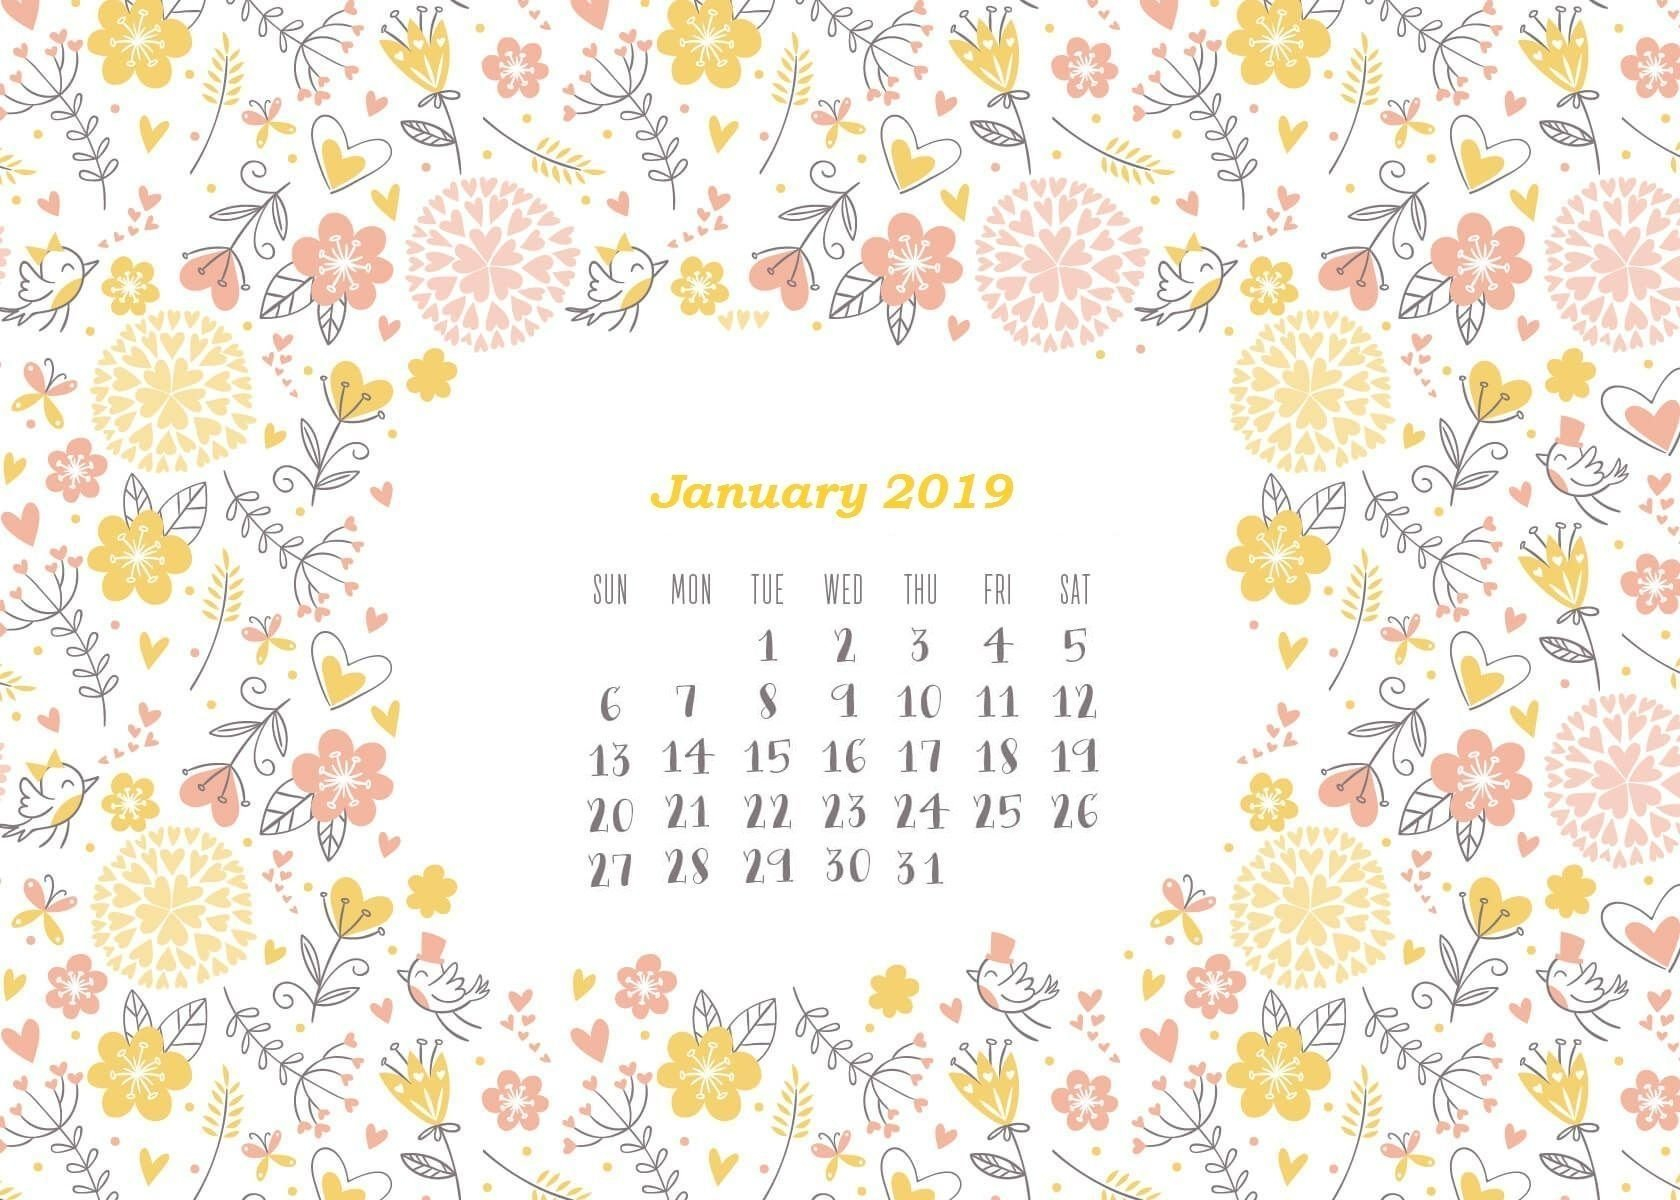 Calendar 2019 Wallpapers - Wallpaper Cave Calendar 2019 Wallpaper